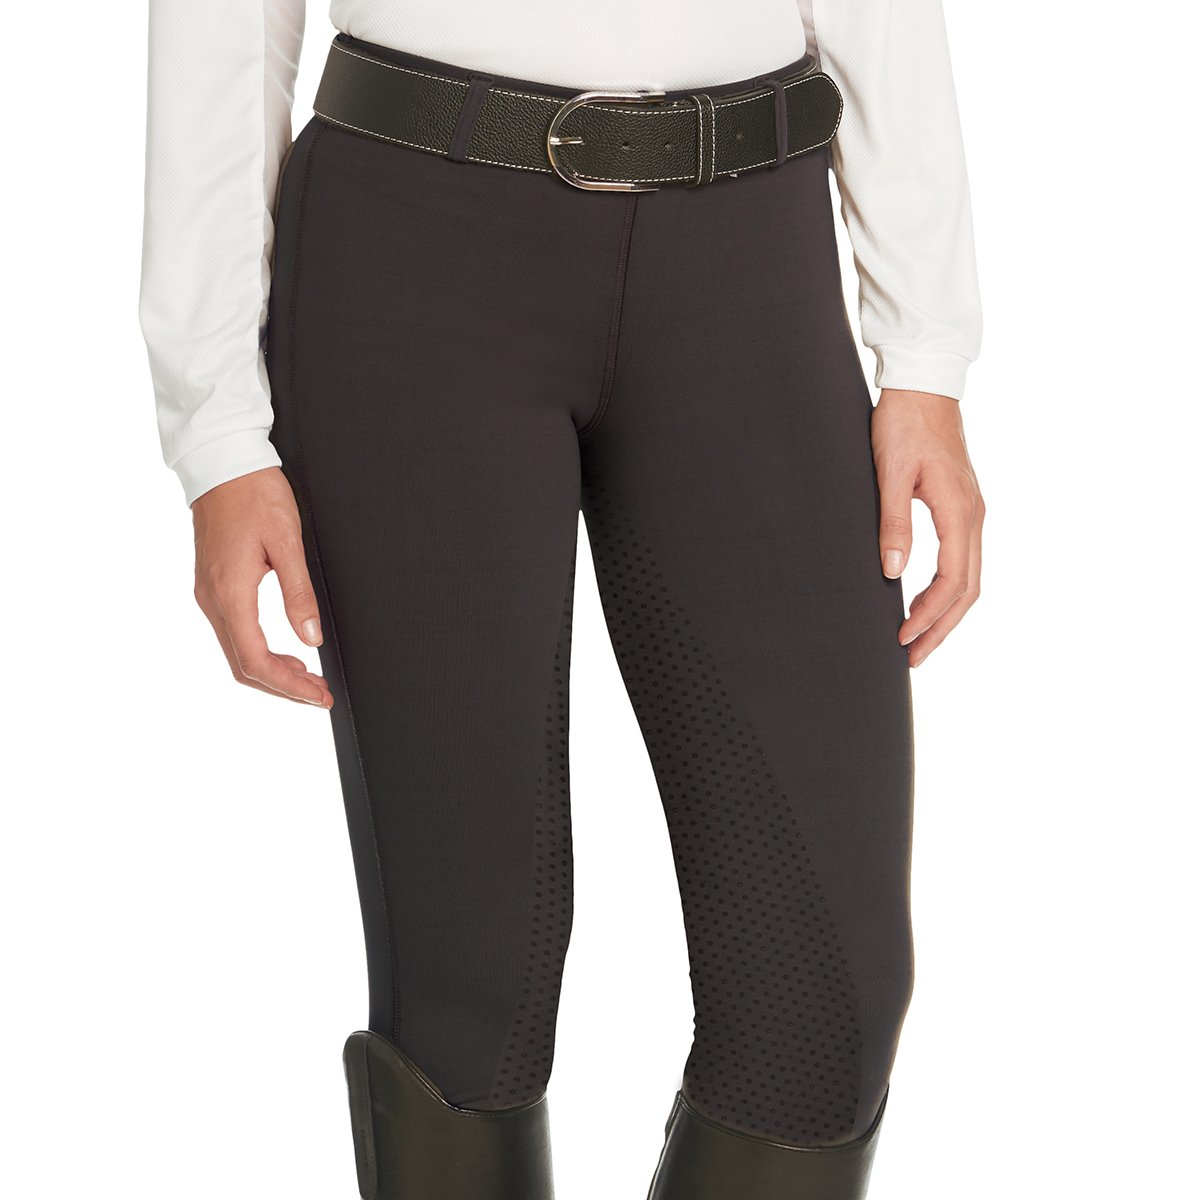 Ovation Ladies aerowickフルシートBreech B06XYRKNJJ Large (30)|ブラック ブラック Large (30)